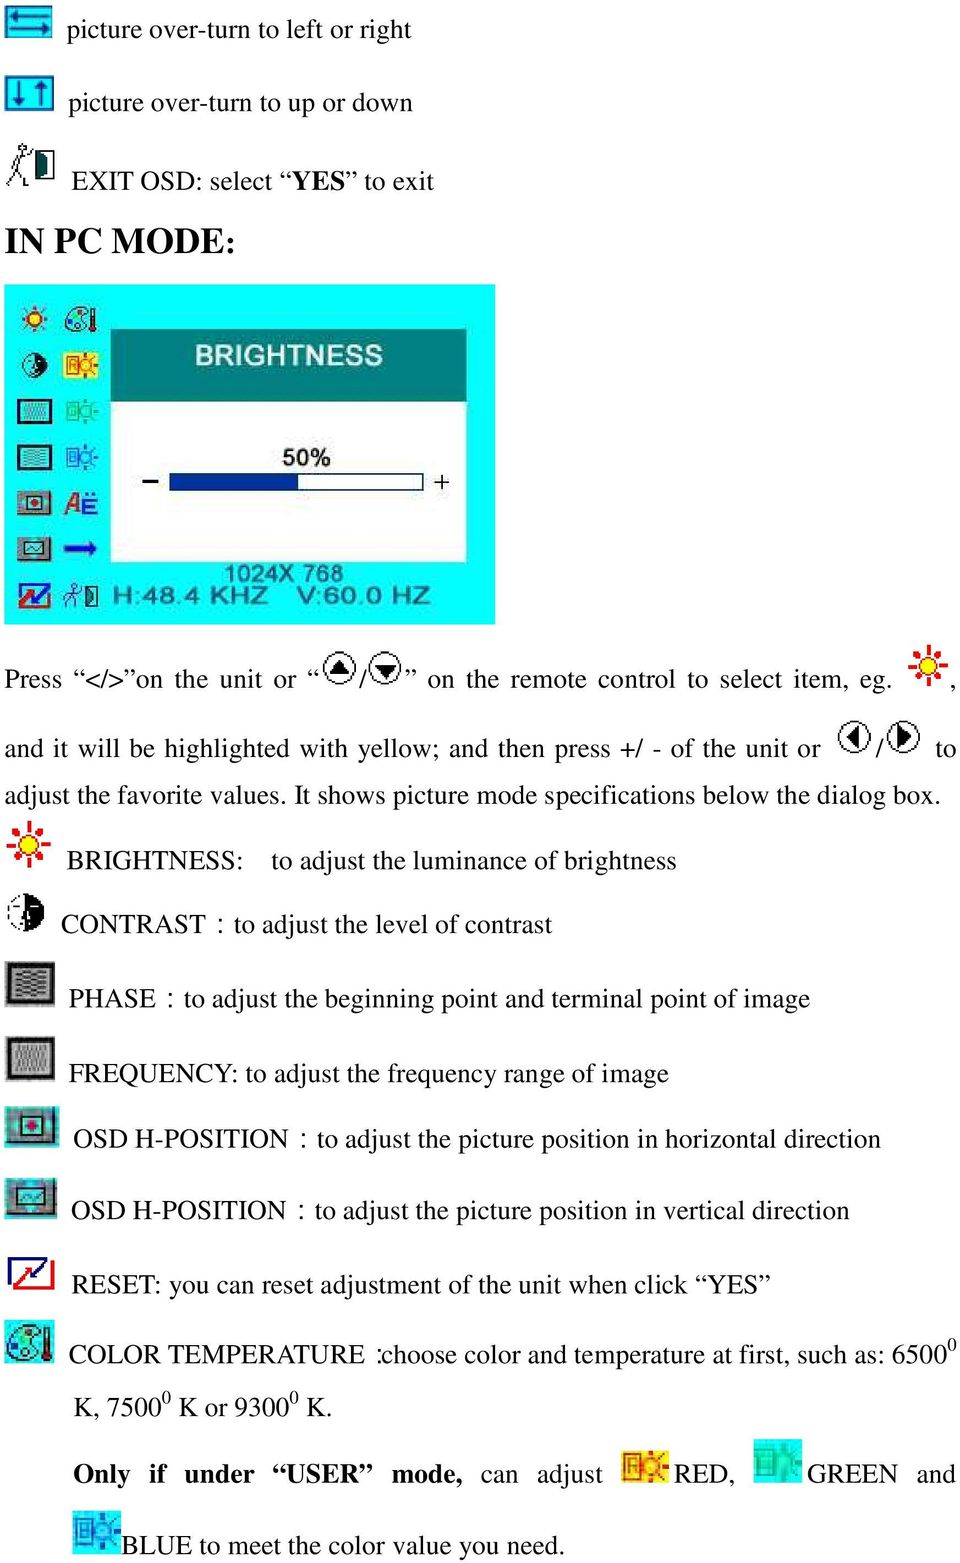 BRIGHTNESS: to adjust the luminance of brightness CONTRAST:to adjust the level of contrast PHASE:to adjust the beginning point and terminal point of image FREQUENCY: to adjust the frequency range of